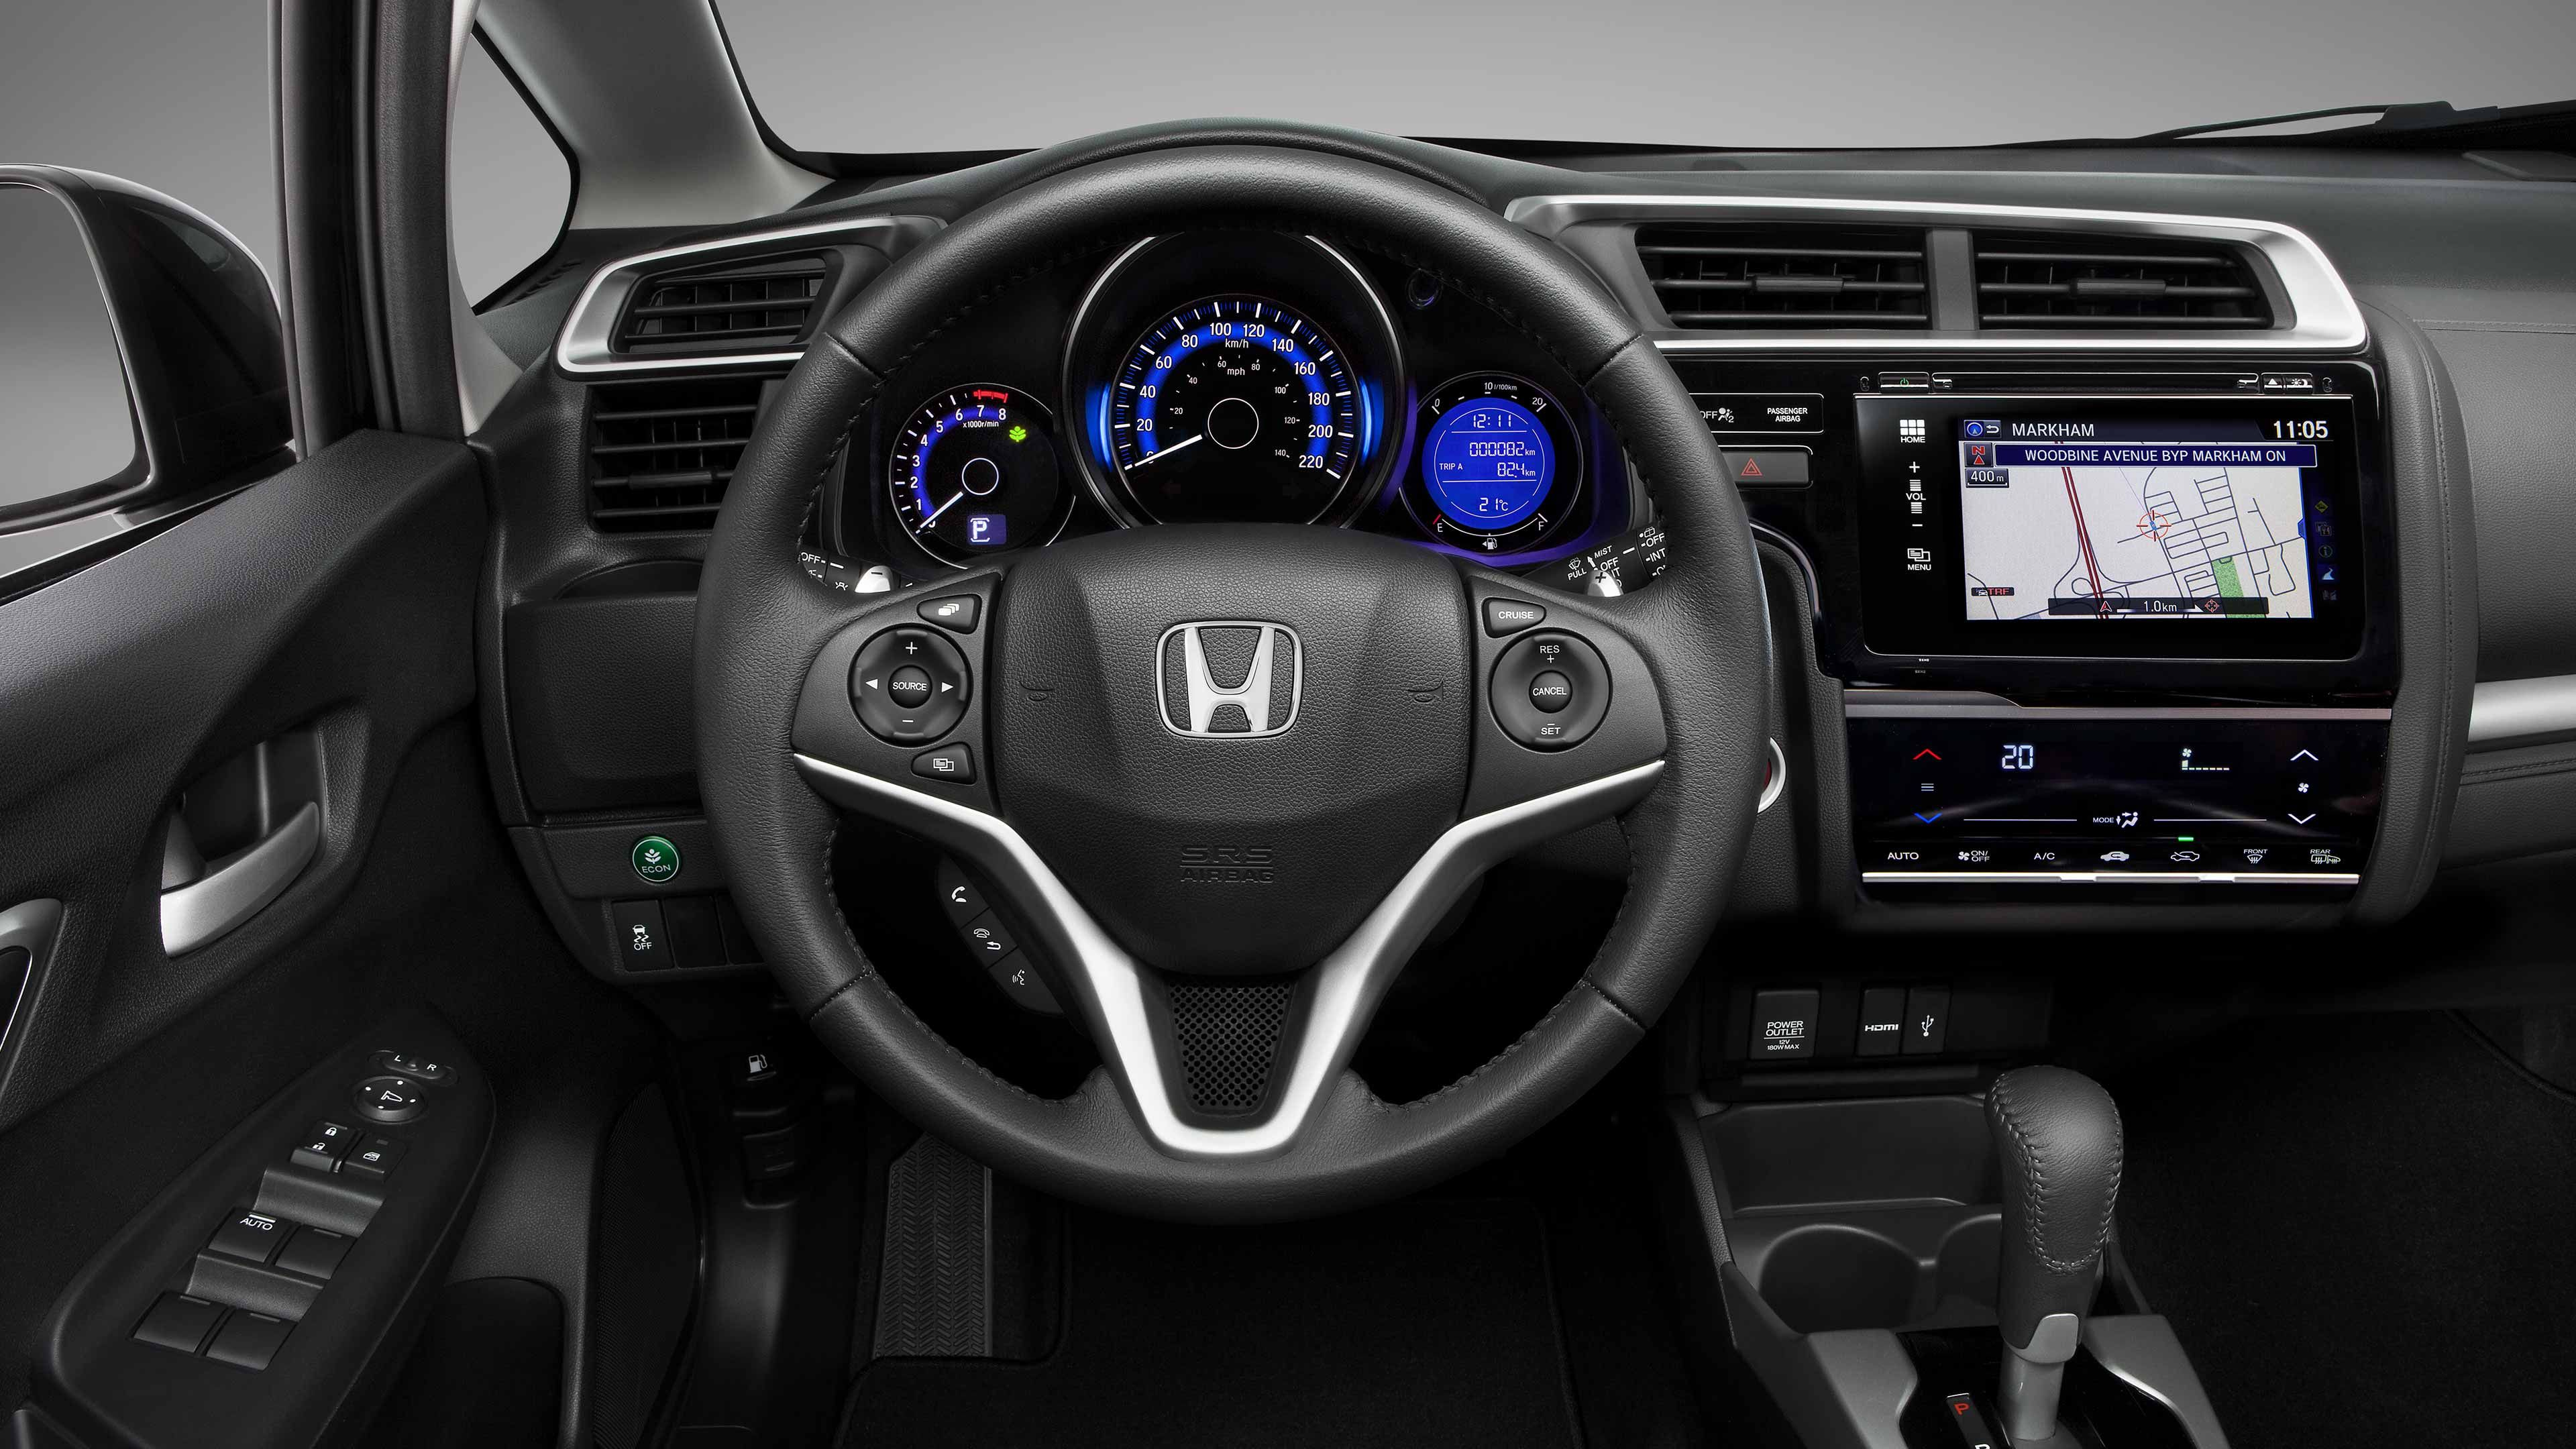 Exterior Photo Gallery The 2017 Fit Honda Canada Honda Fit Honda 2016 Honda Fit